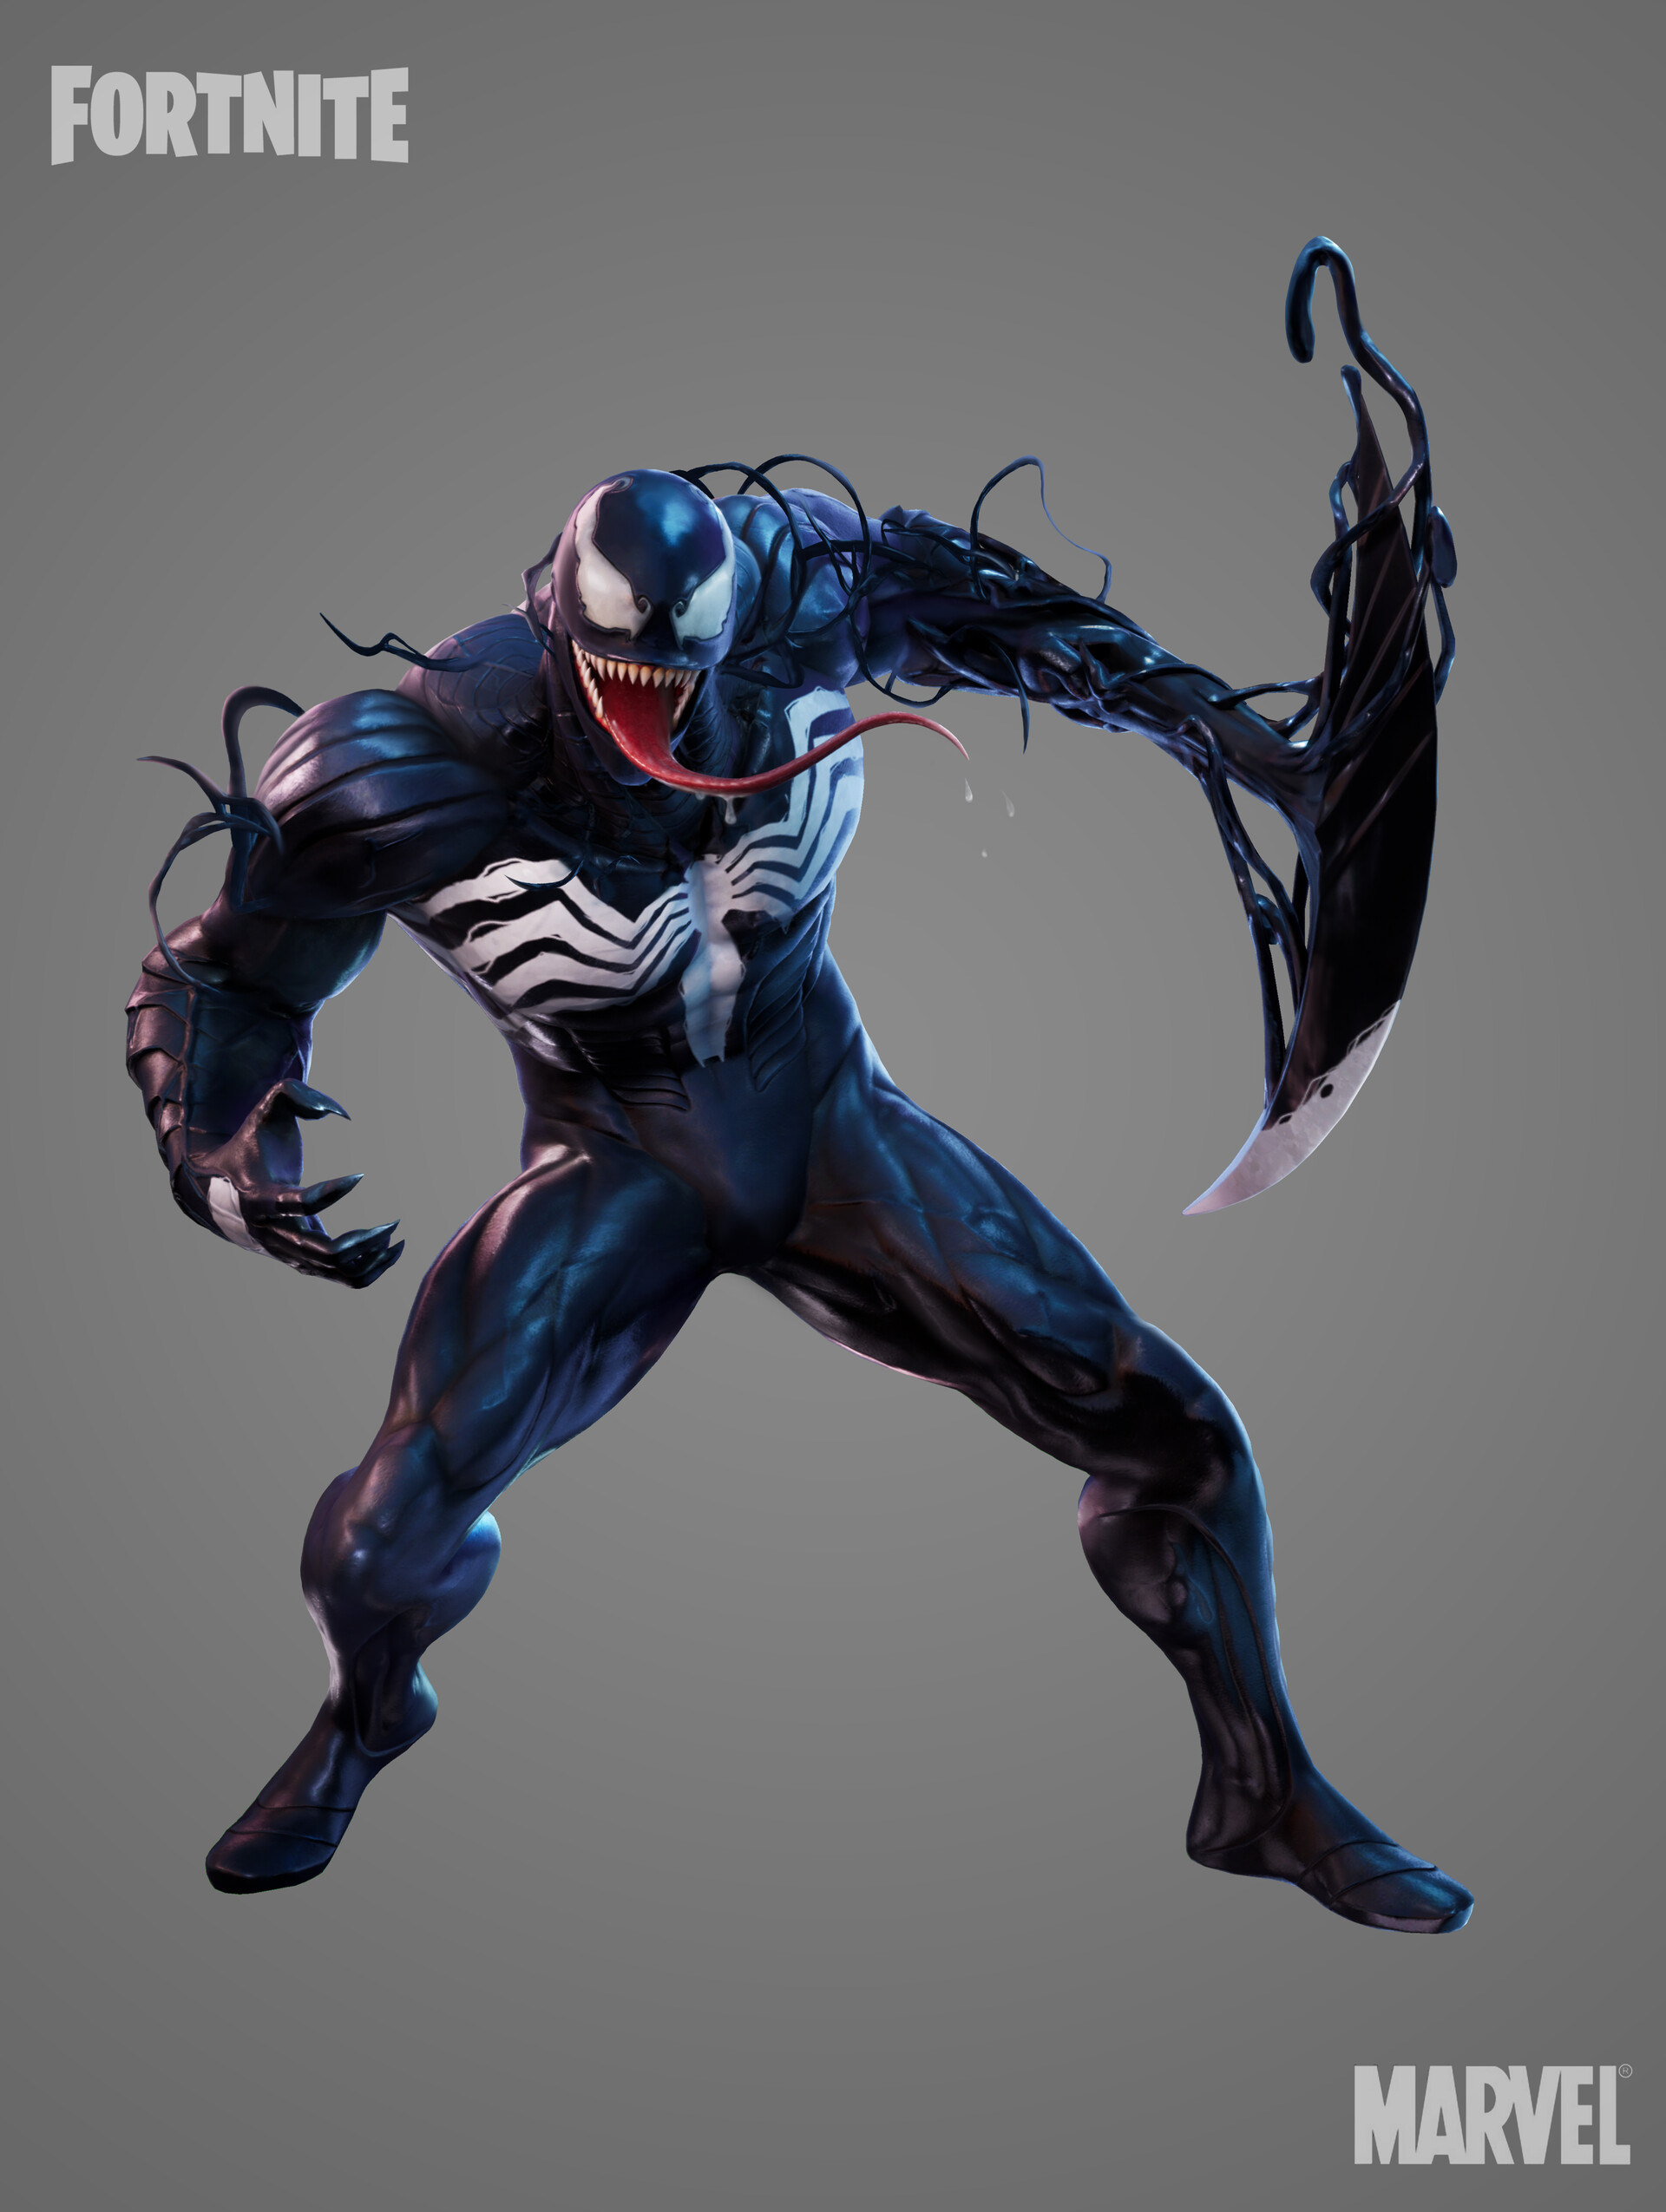 Artstation Fortnite Venom Justin Holt Season 4 continues to roll along, and epic is celebrating the tail end of its marvel collaboration with how to get the fortnite venom skin (for free). artstation fortnite venom justin holt